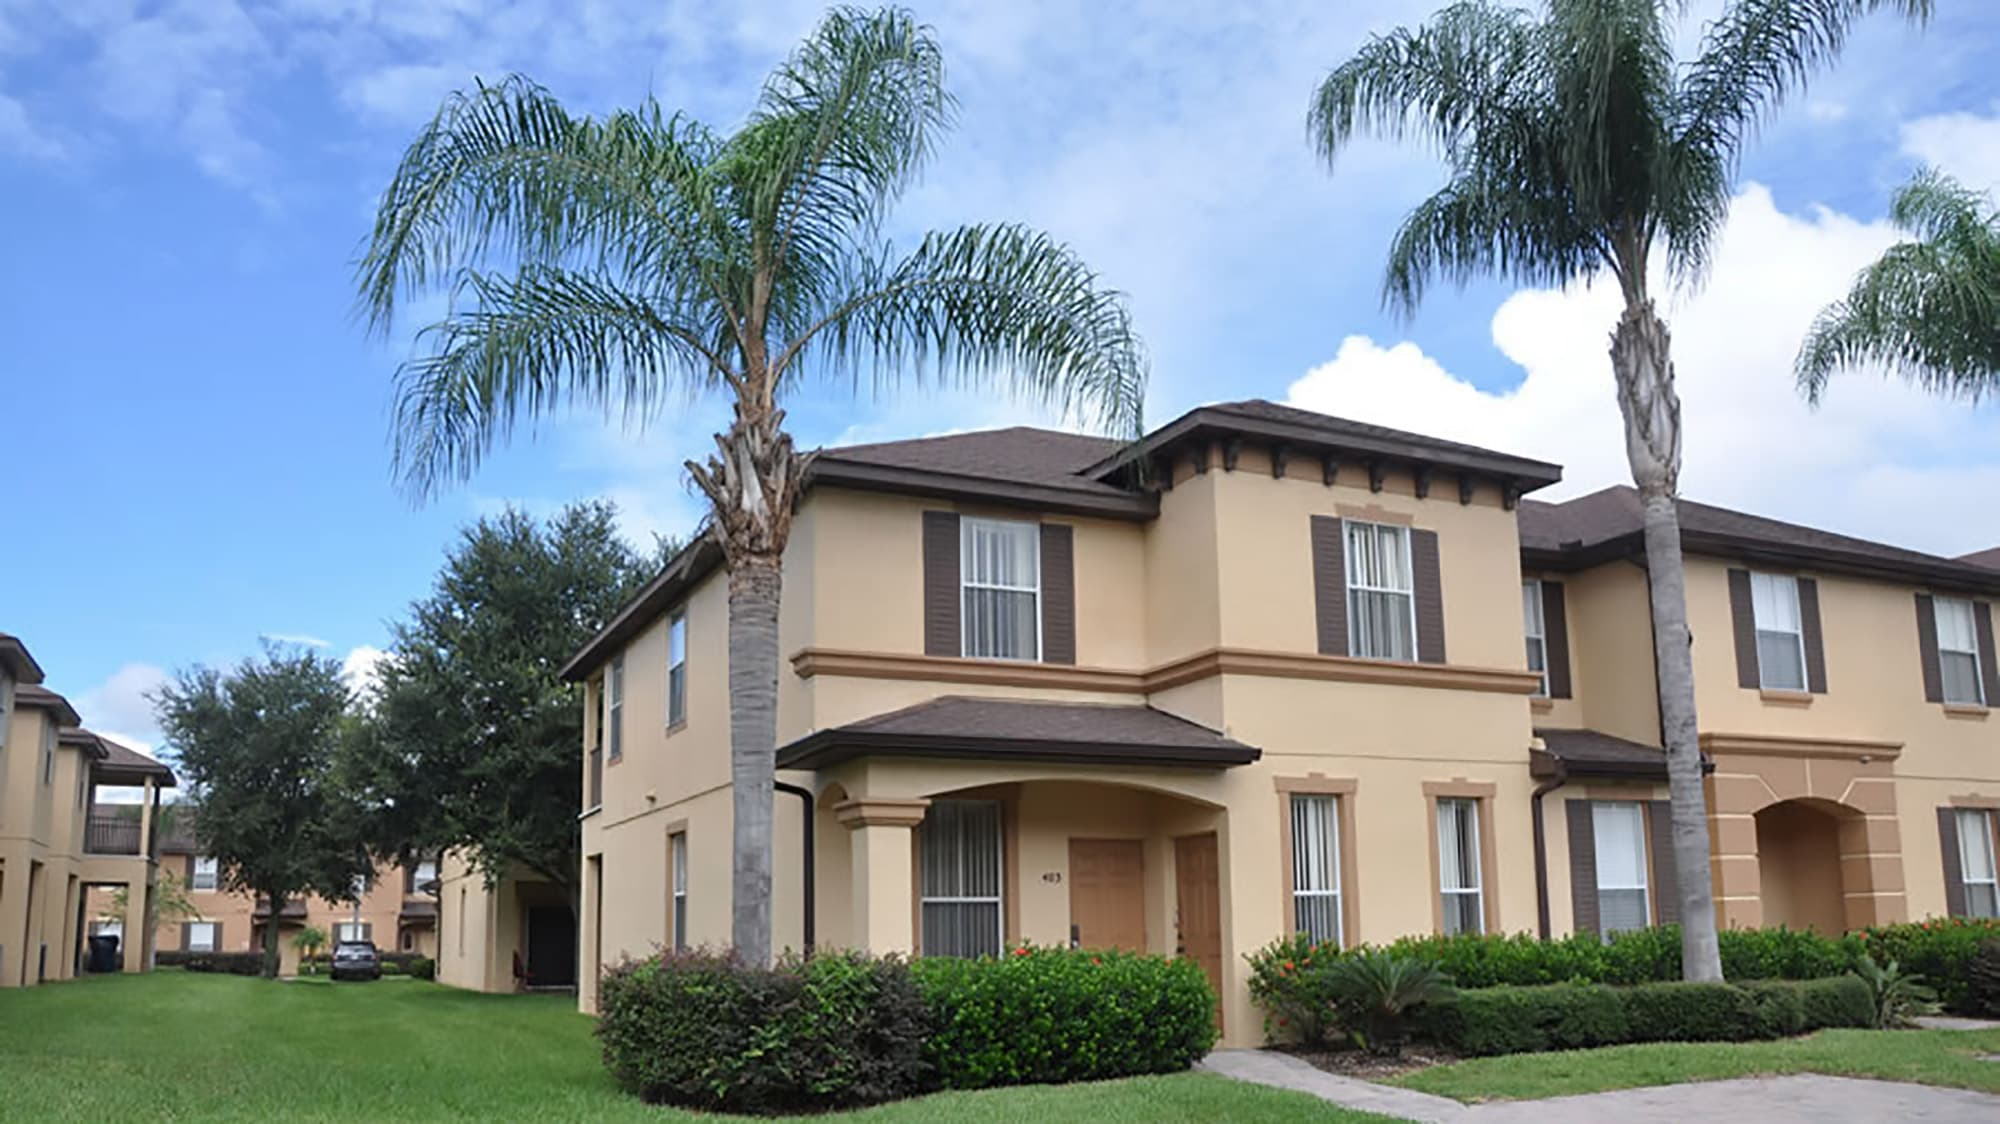 exterior of townhome at Regal Palms in Davenport, available for rent through SunKiss Villas